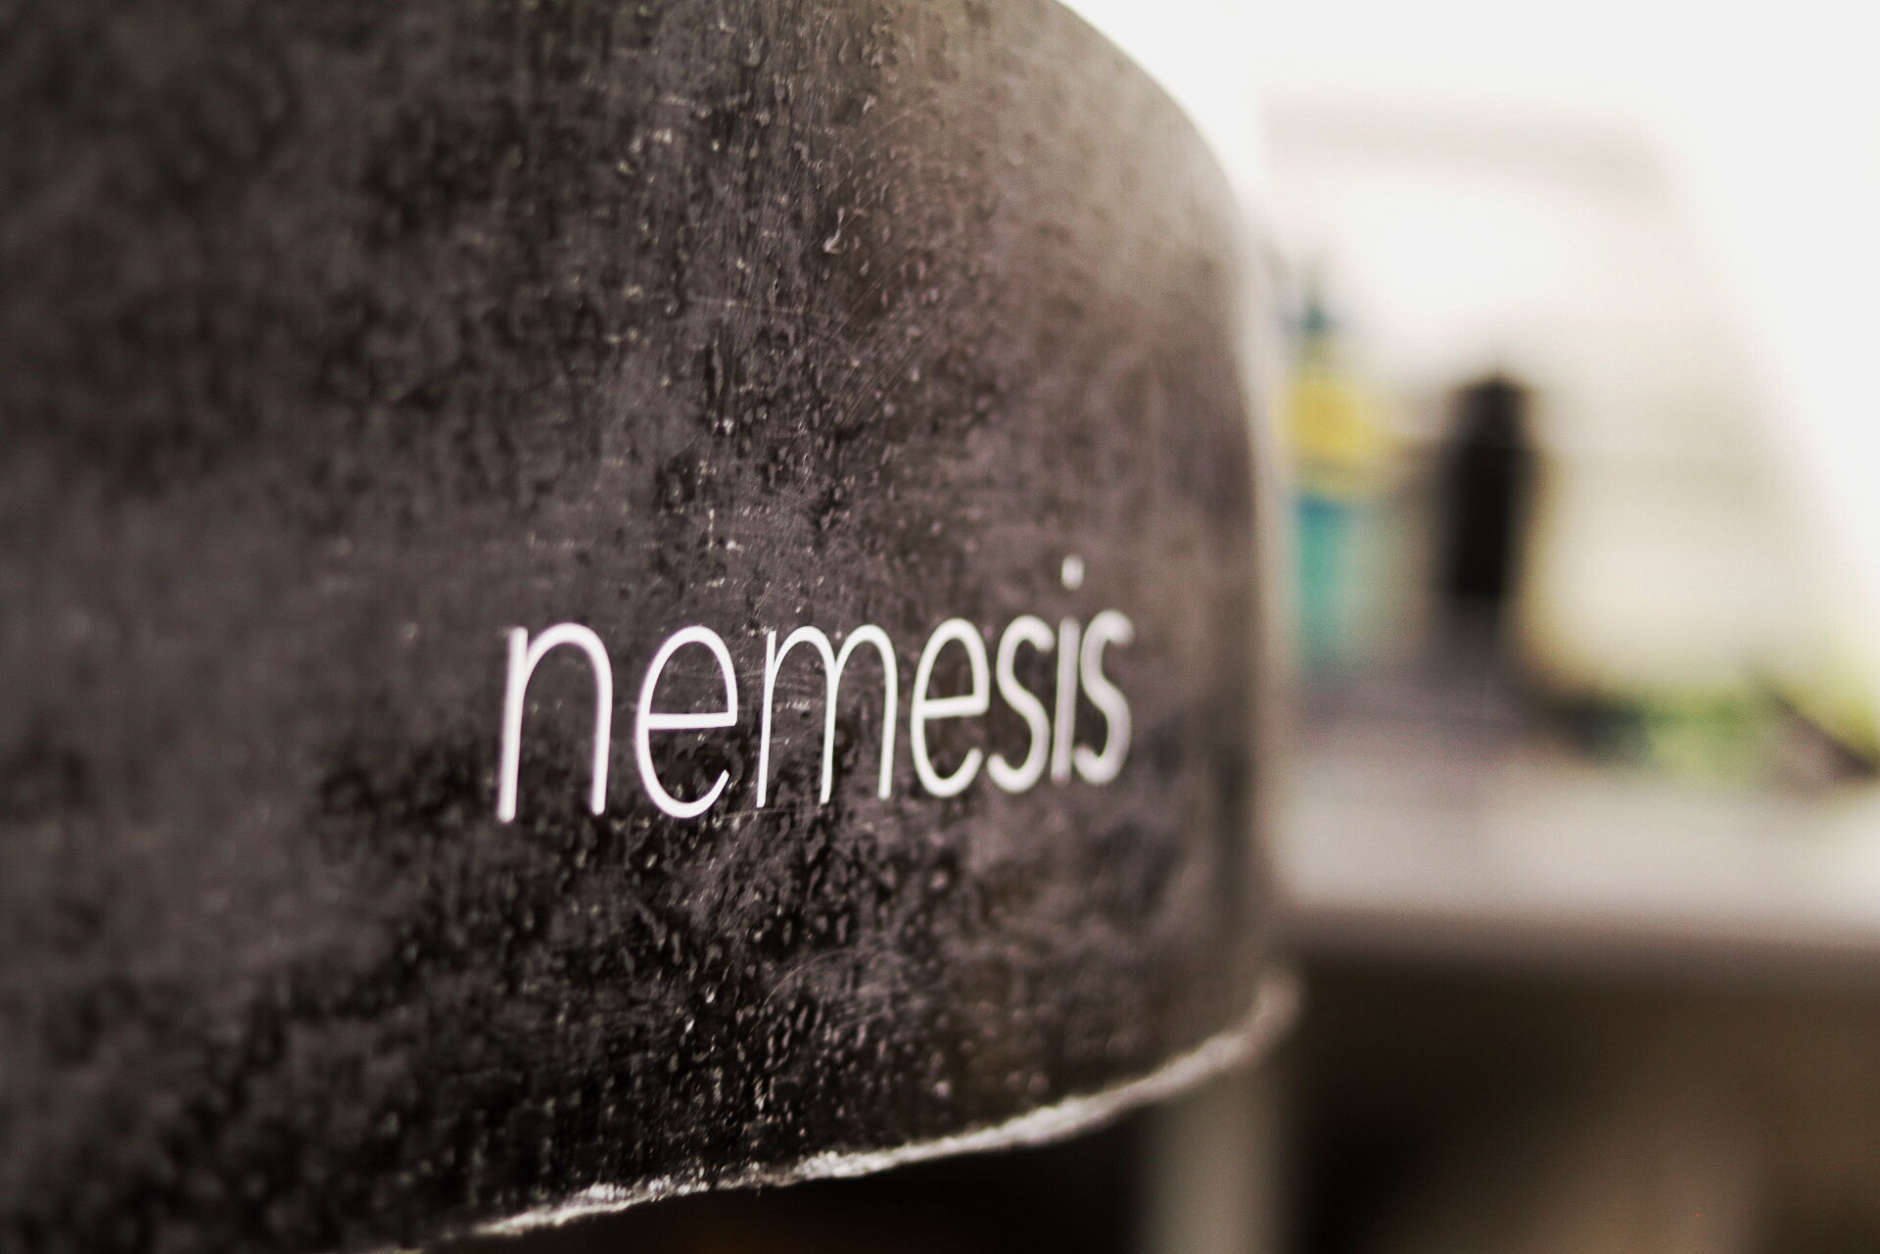 Nemesis is the name of the aluminum- and carbon-fiber pod that could break 100 mph designed by University of Maryland students for the SpaceX Hyperloop pod competition. (WTOP/Kate Ryan)